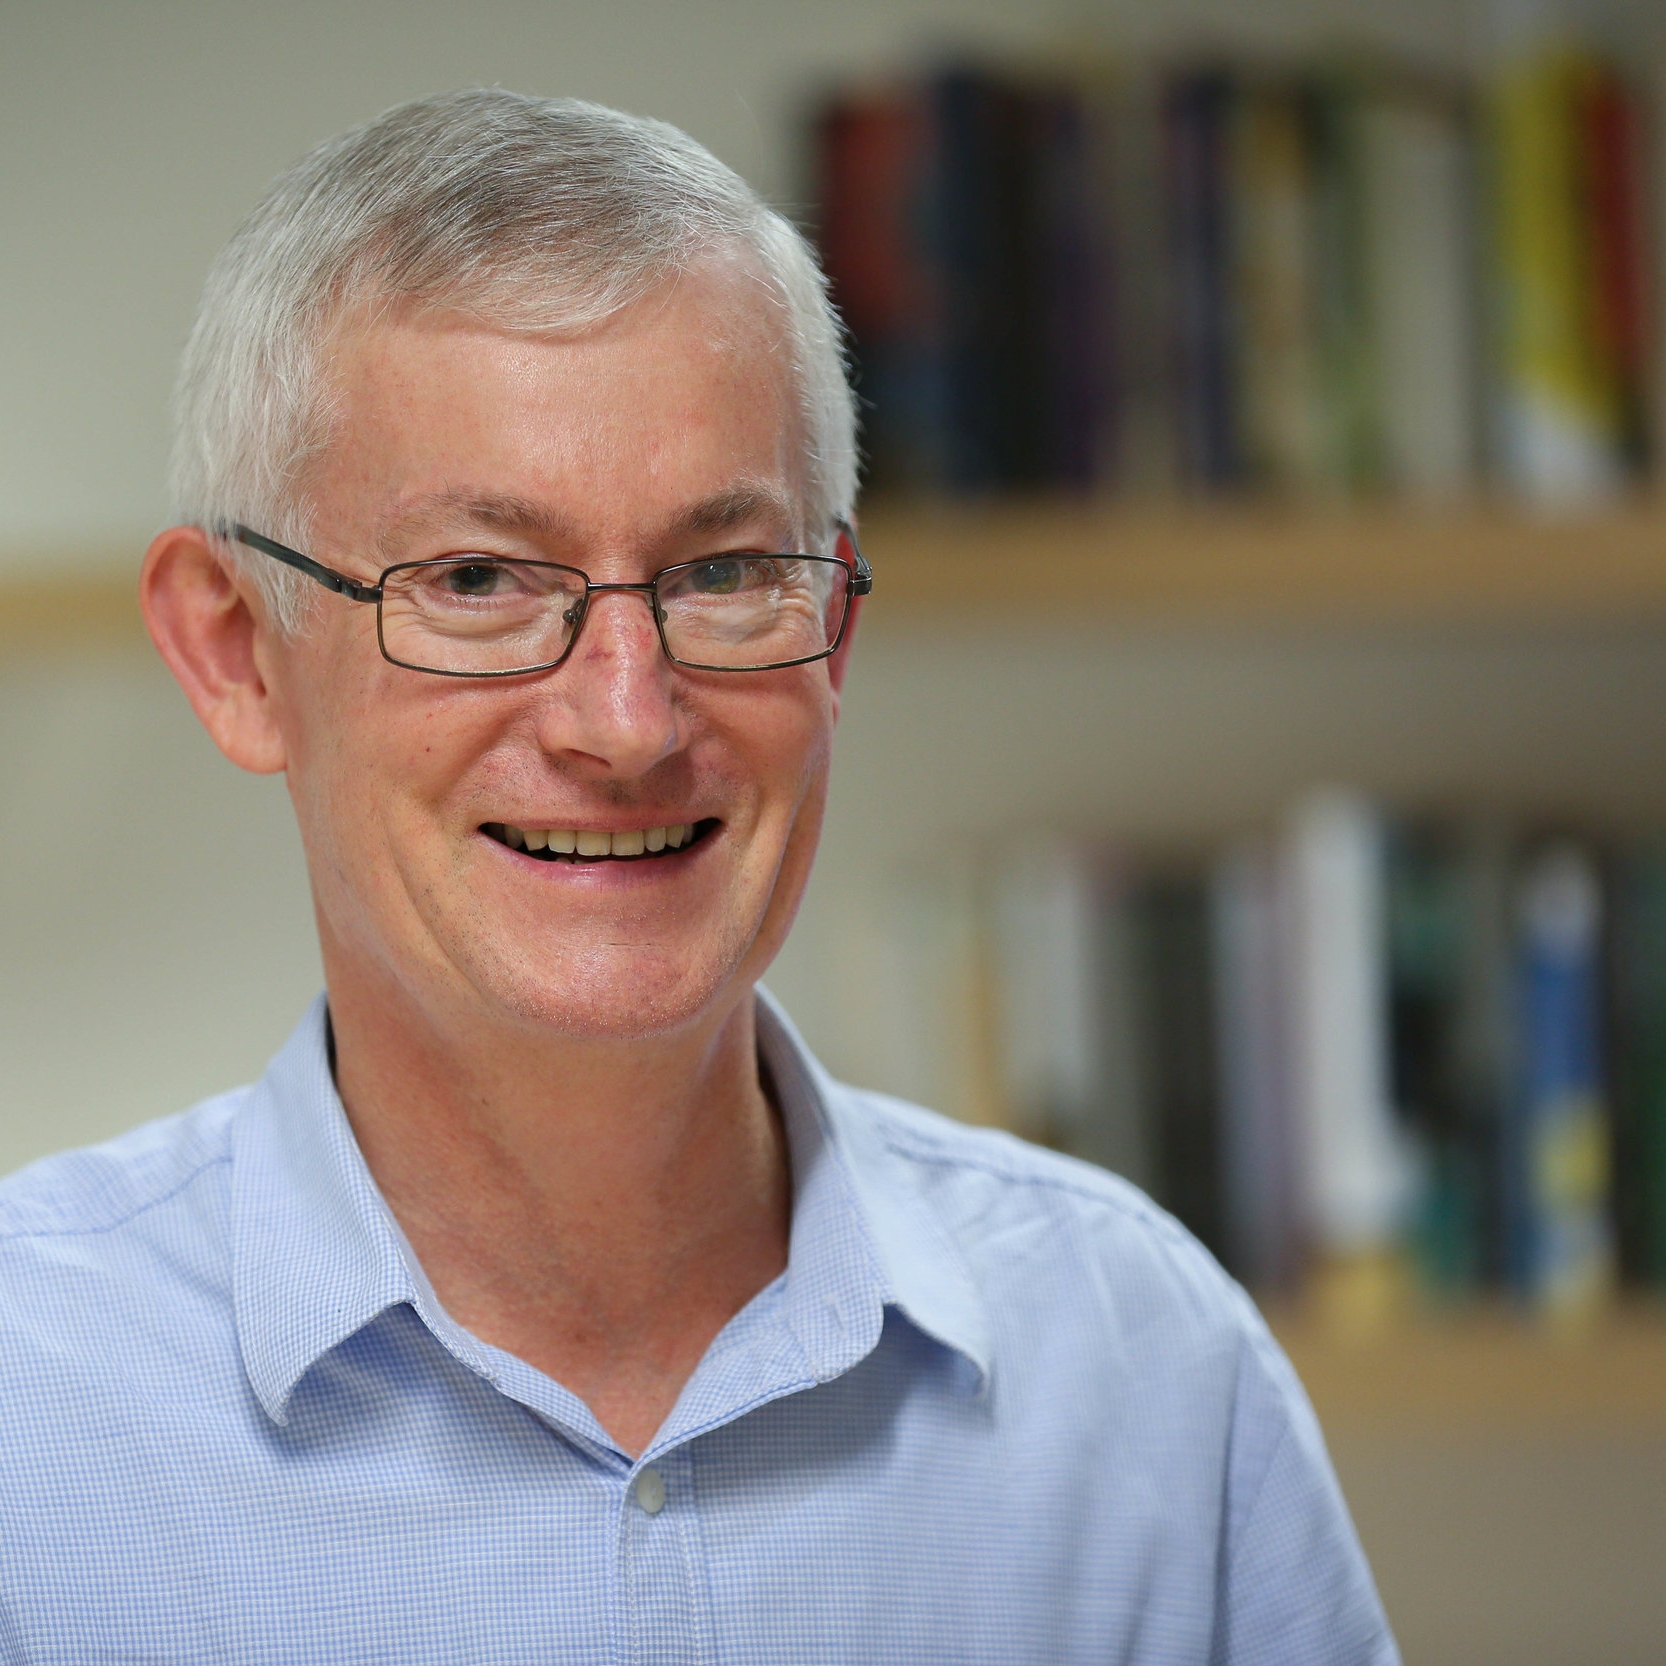 Keith Condie, Co-director of ADM's Mental Health & Pastoral Care Institute